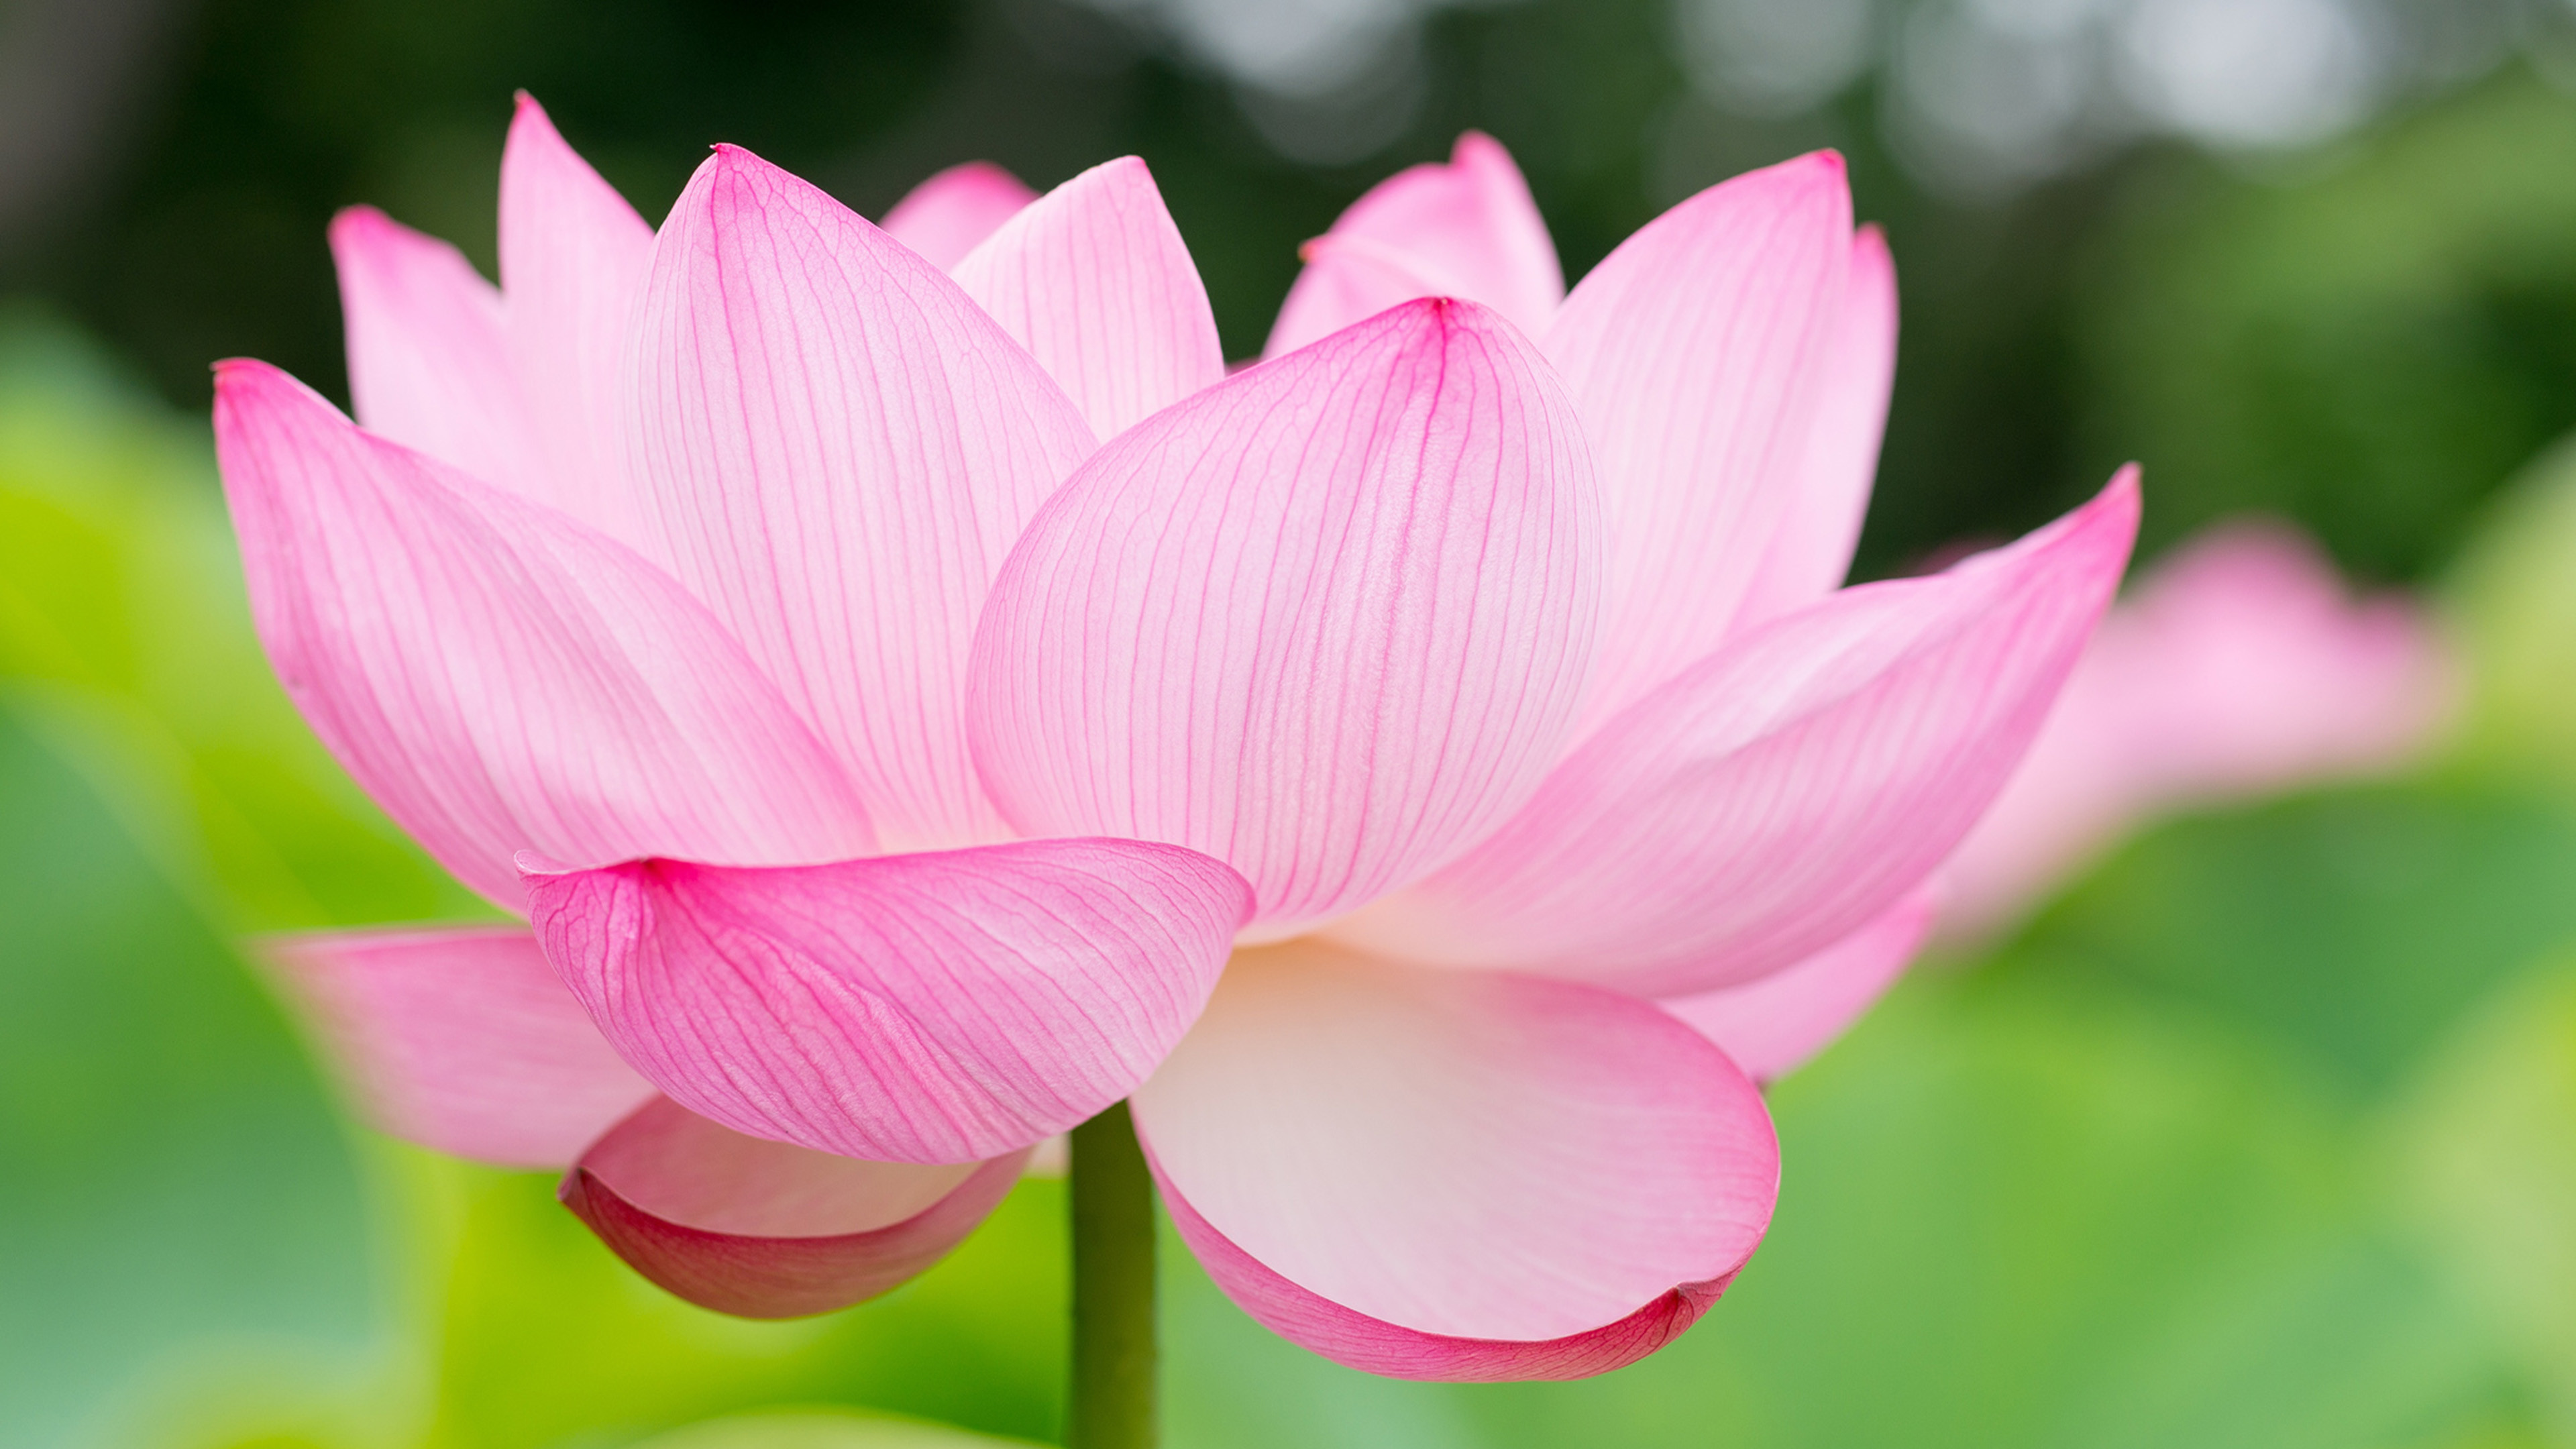 Lotus Flower Background 54 Images